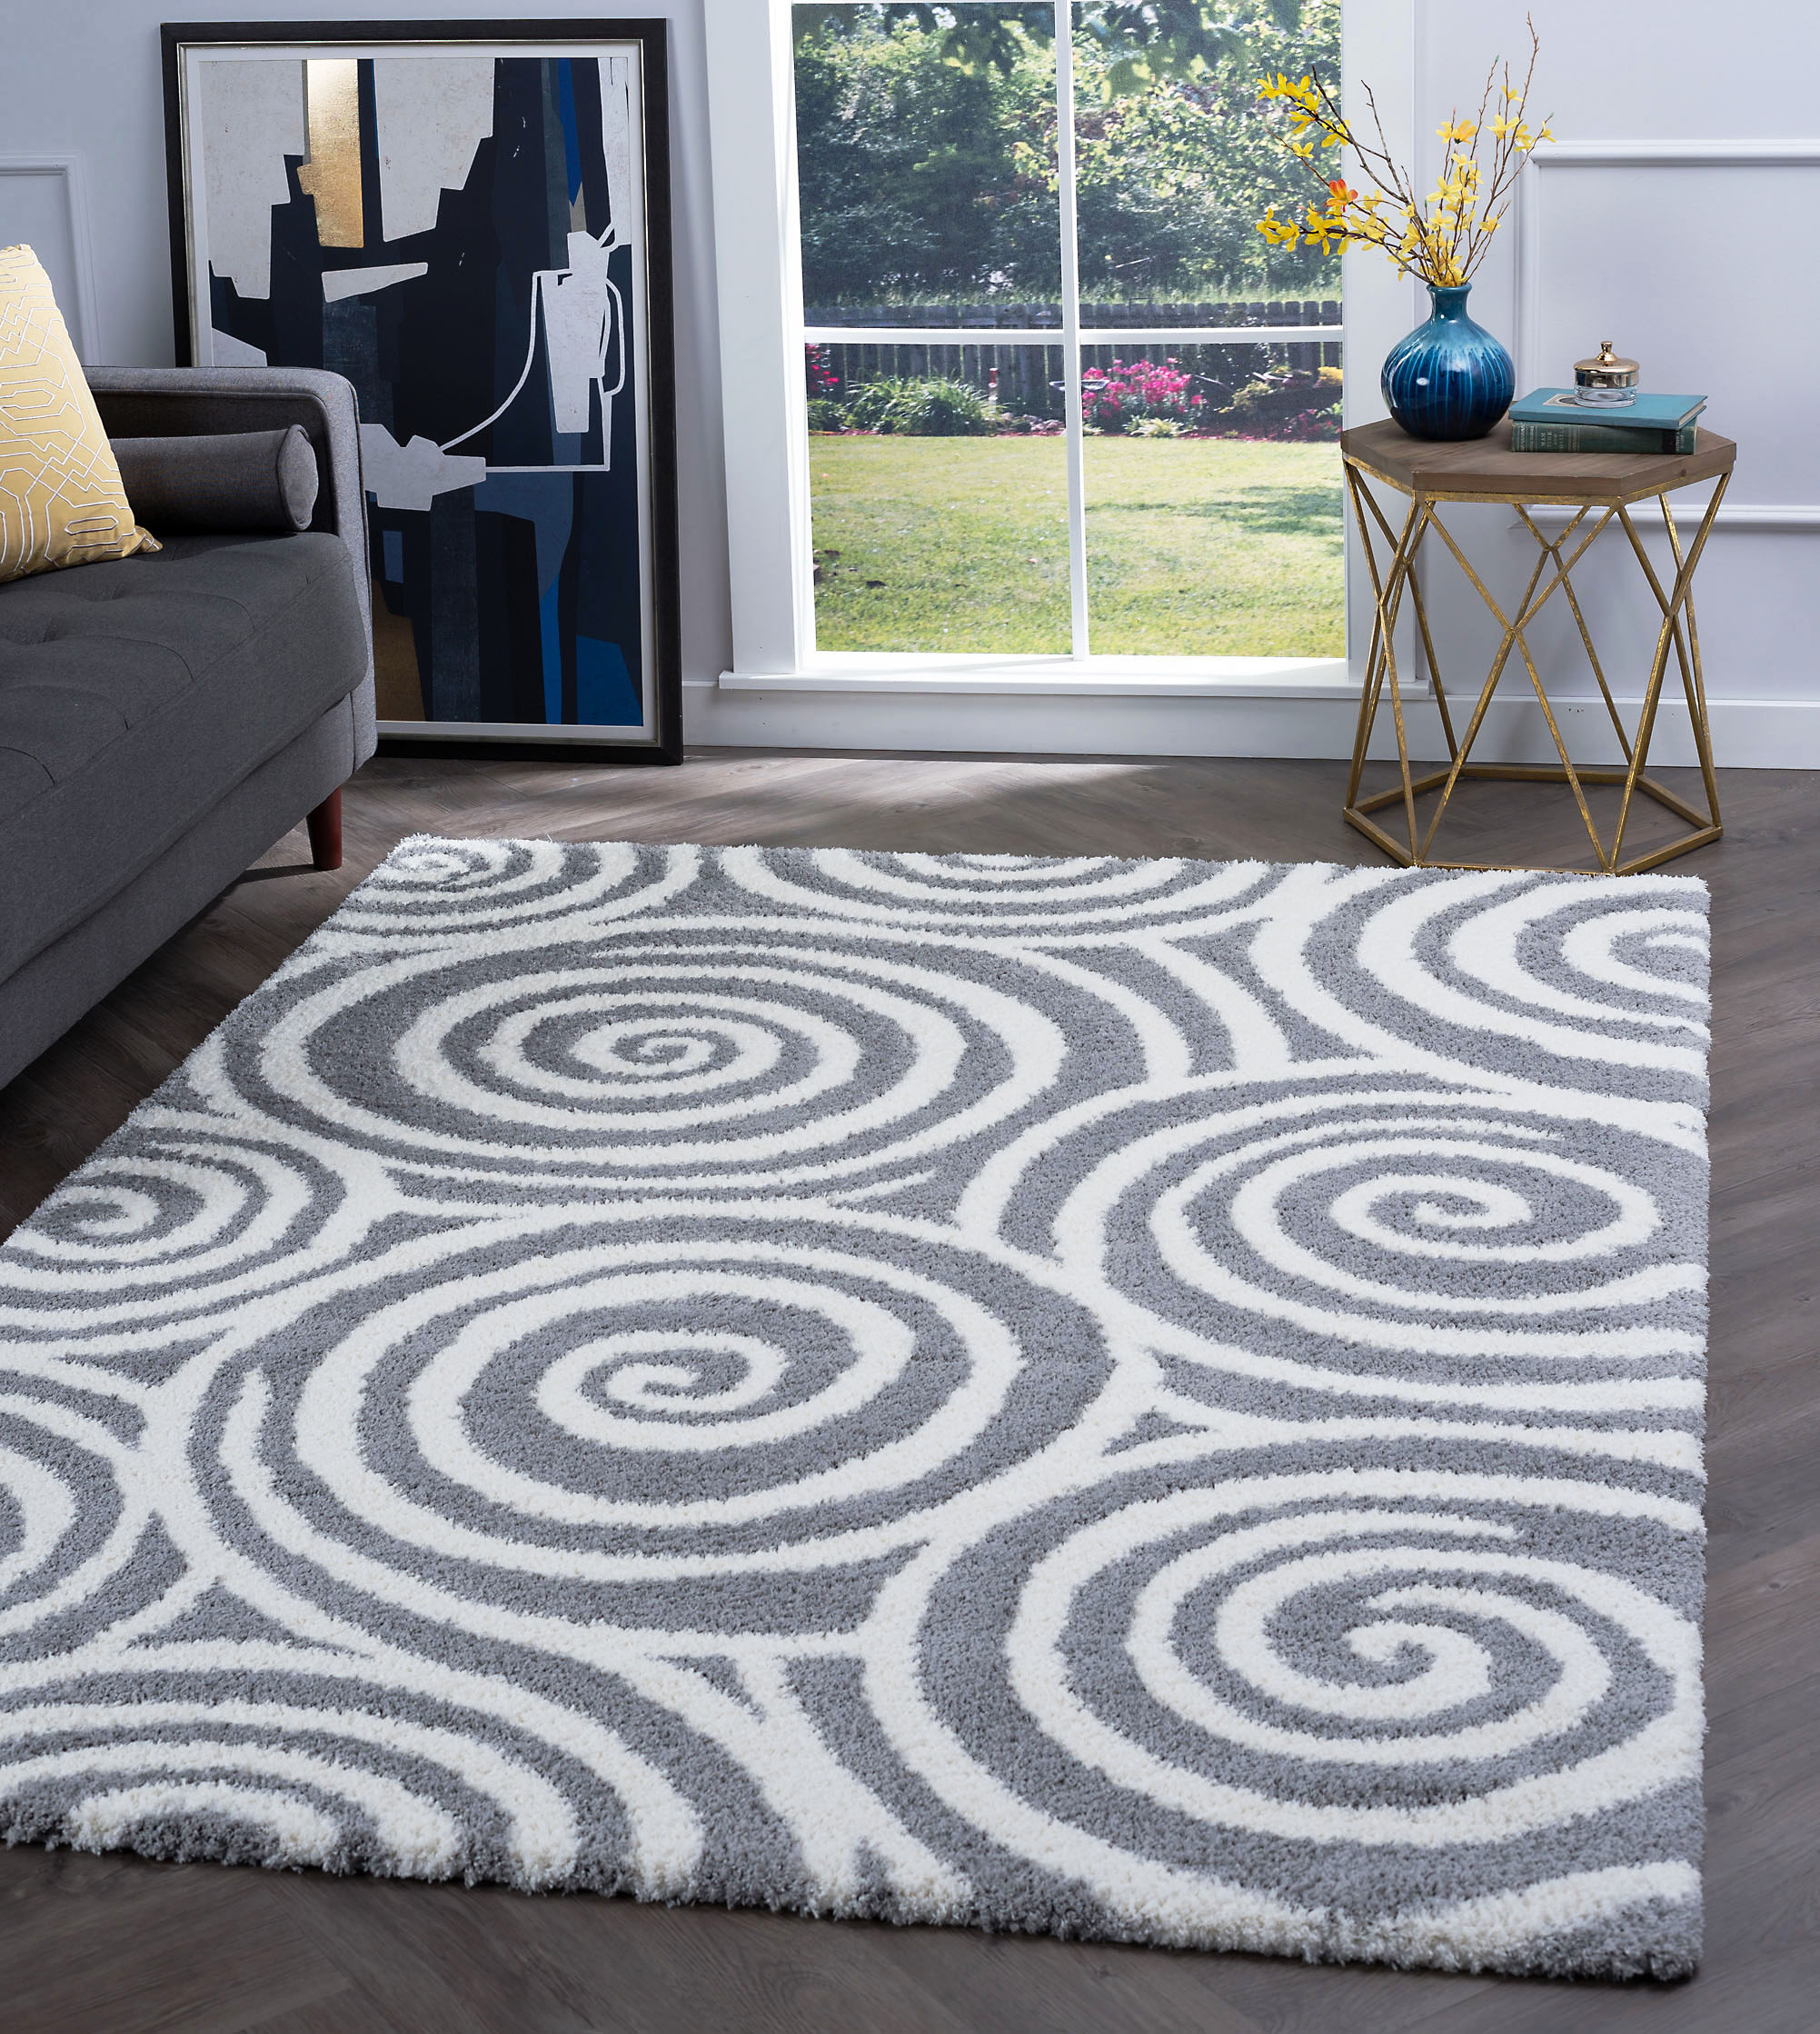 Bliss Rugs Rexford Contemporary Shag Rug